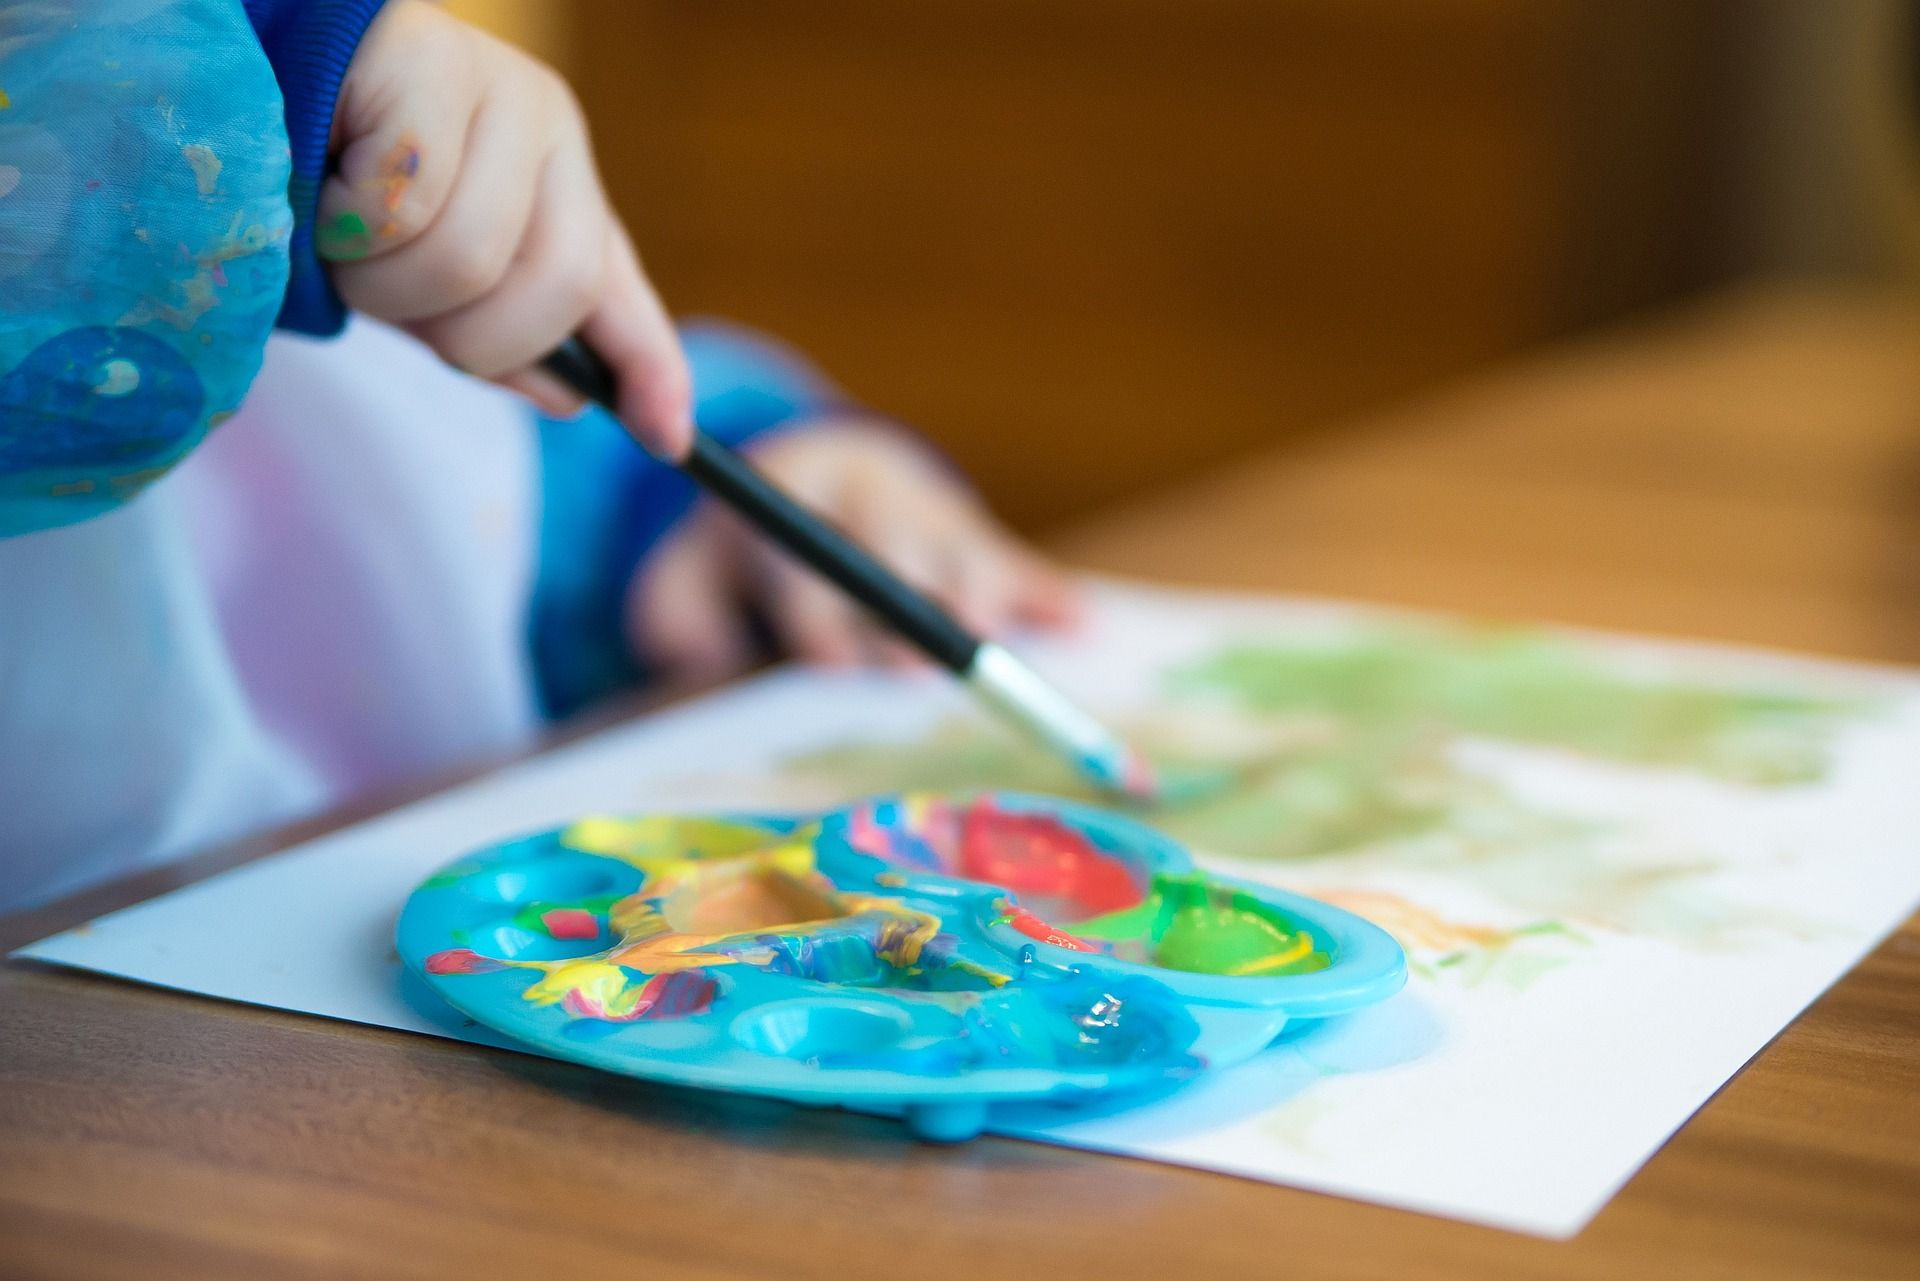 DIY Crafting with Kids